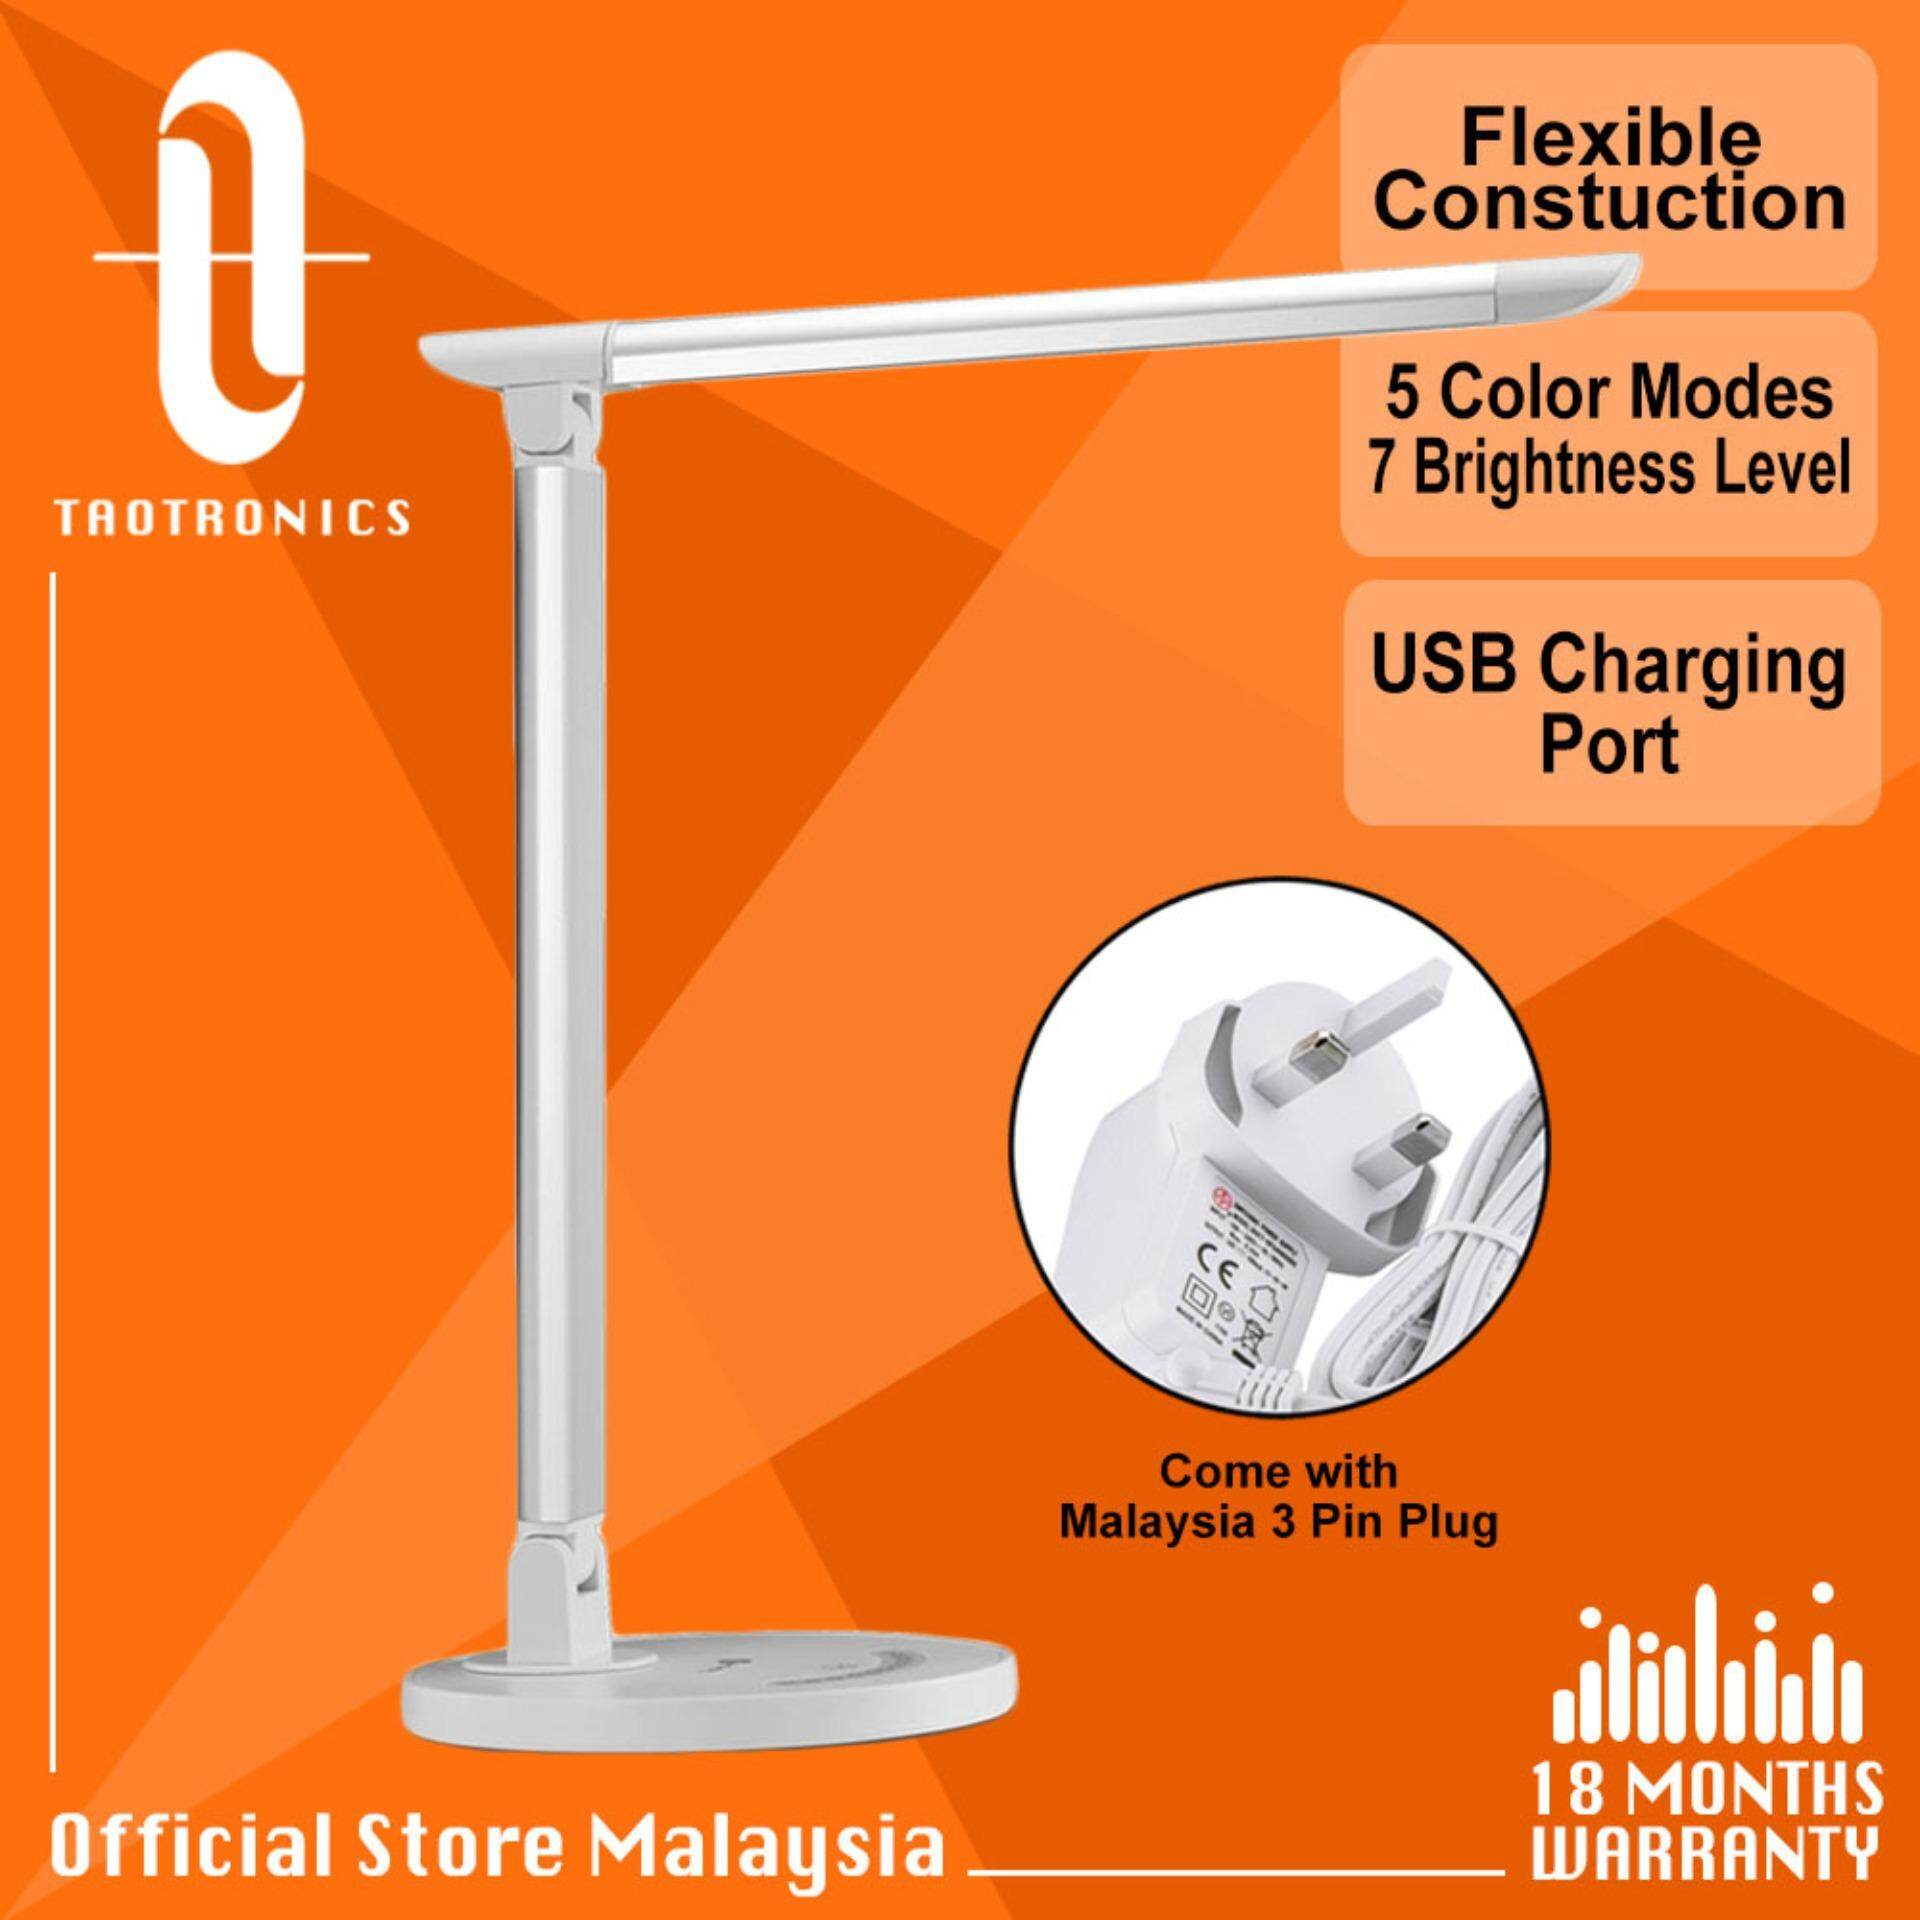 Taotronics DL13 12W Multi-Function LED Dimmable Desk Lamp, Philips EnabLED Licensing Program, TT Eye-caring Table Lamps, Office Lamp, USB Charging Port, Phone Charging, Touch Controls, 5 Color Modes with 7 Brightness Level, Flexible Construction